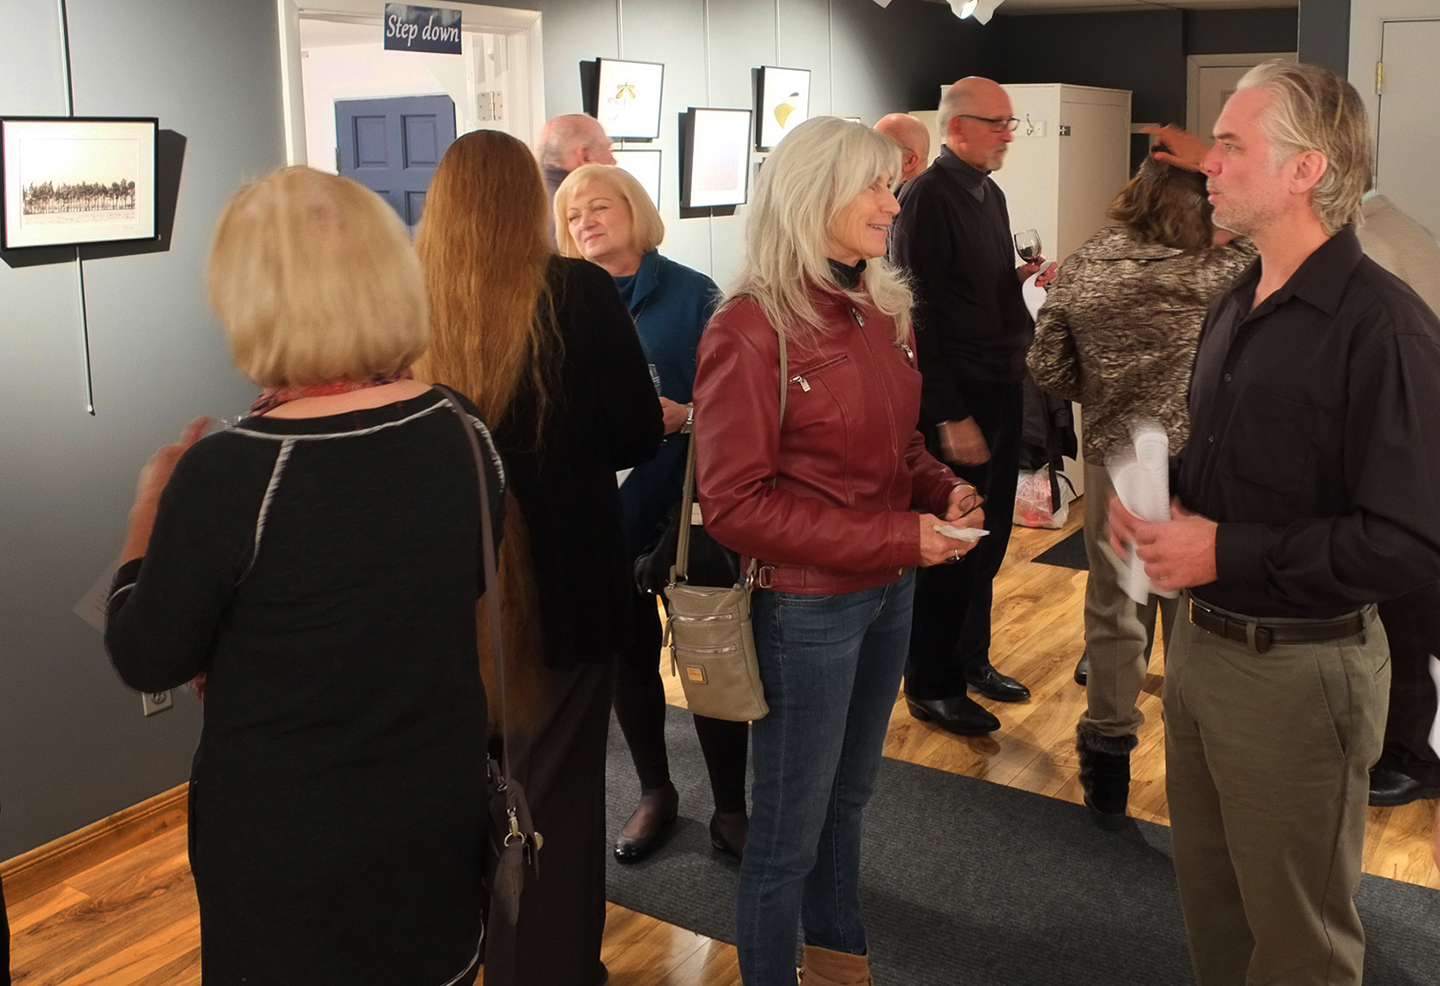 Guests enjoying the exhibit